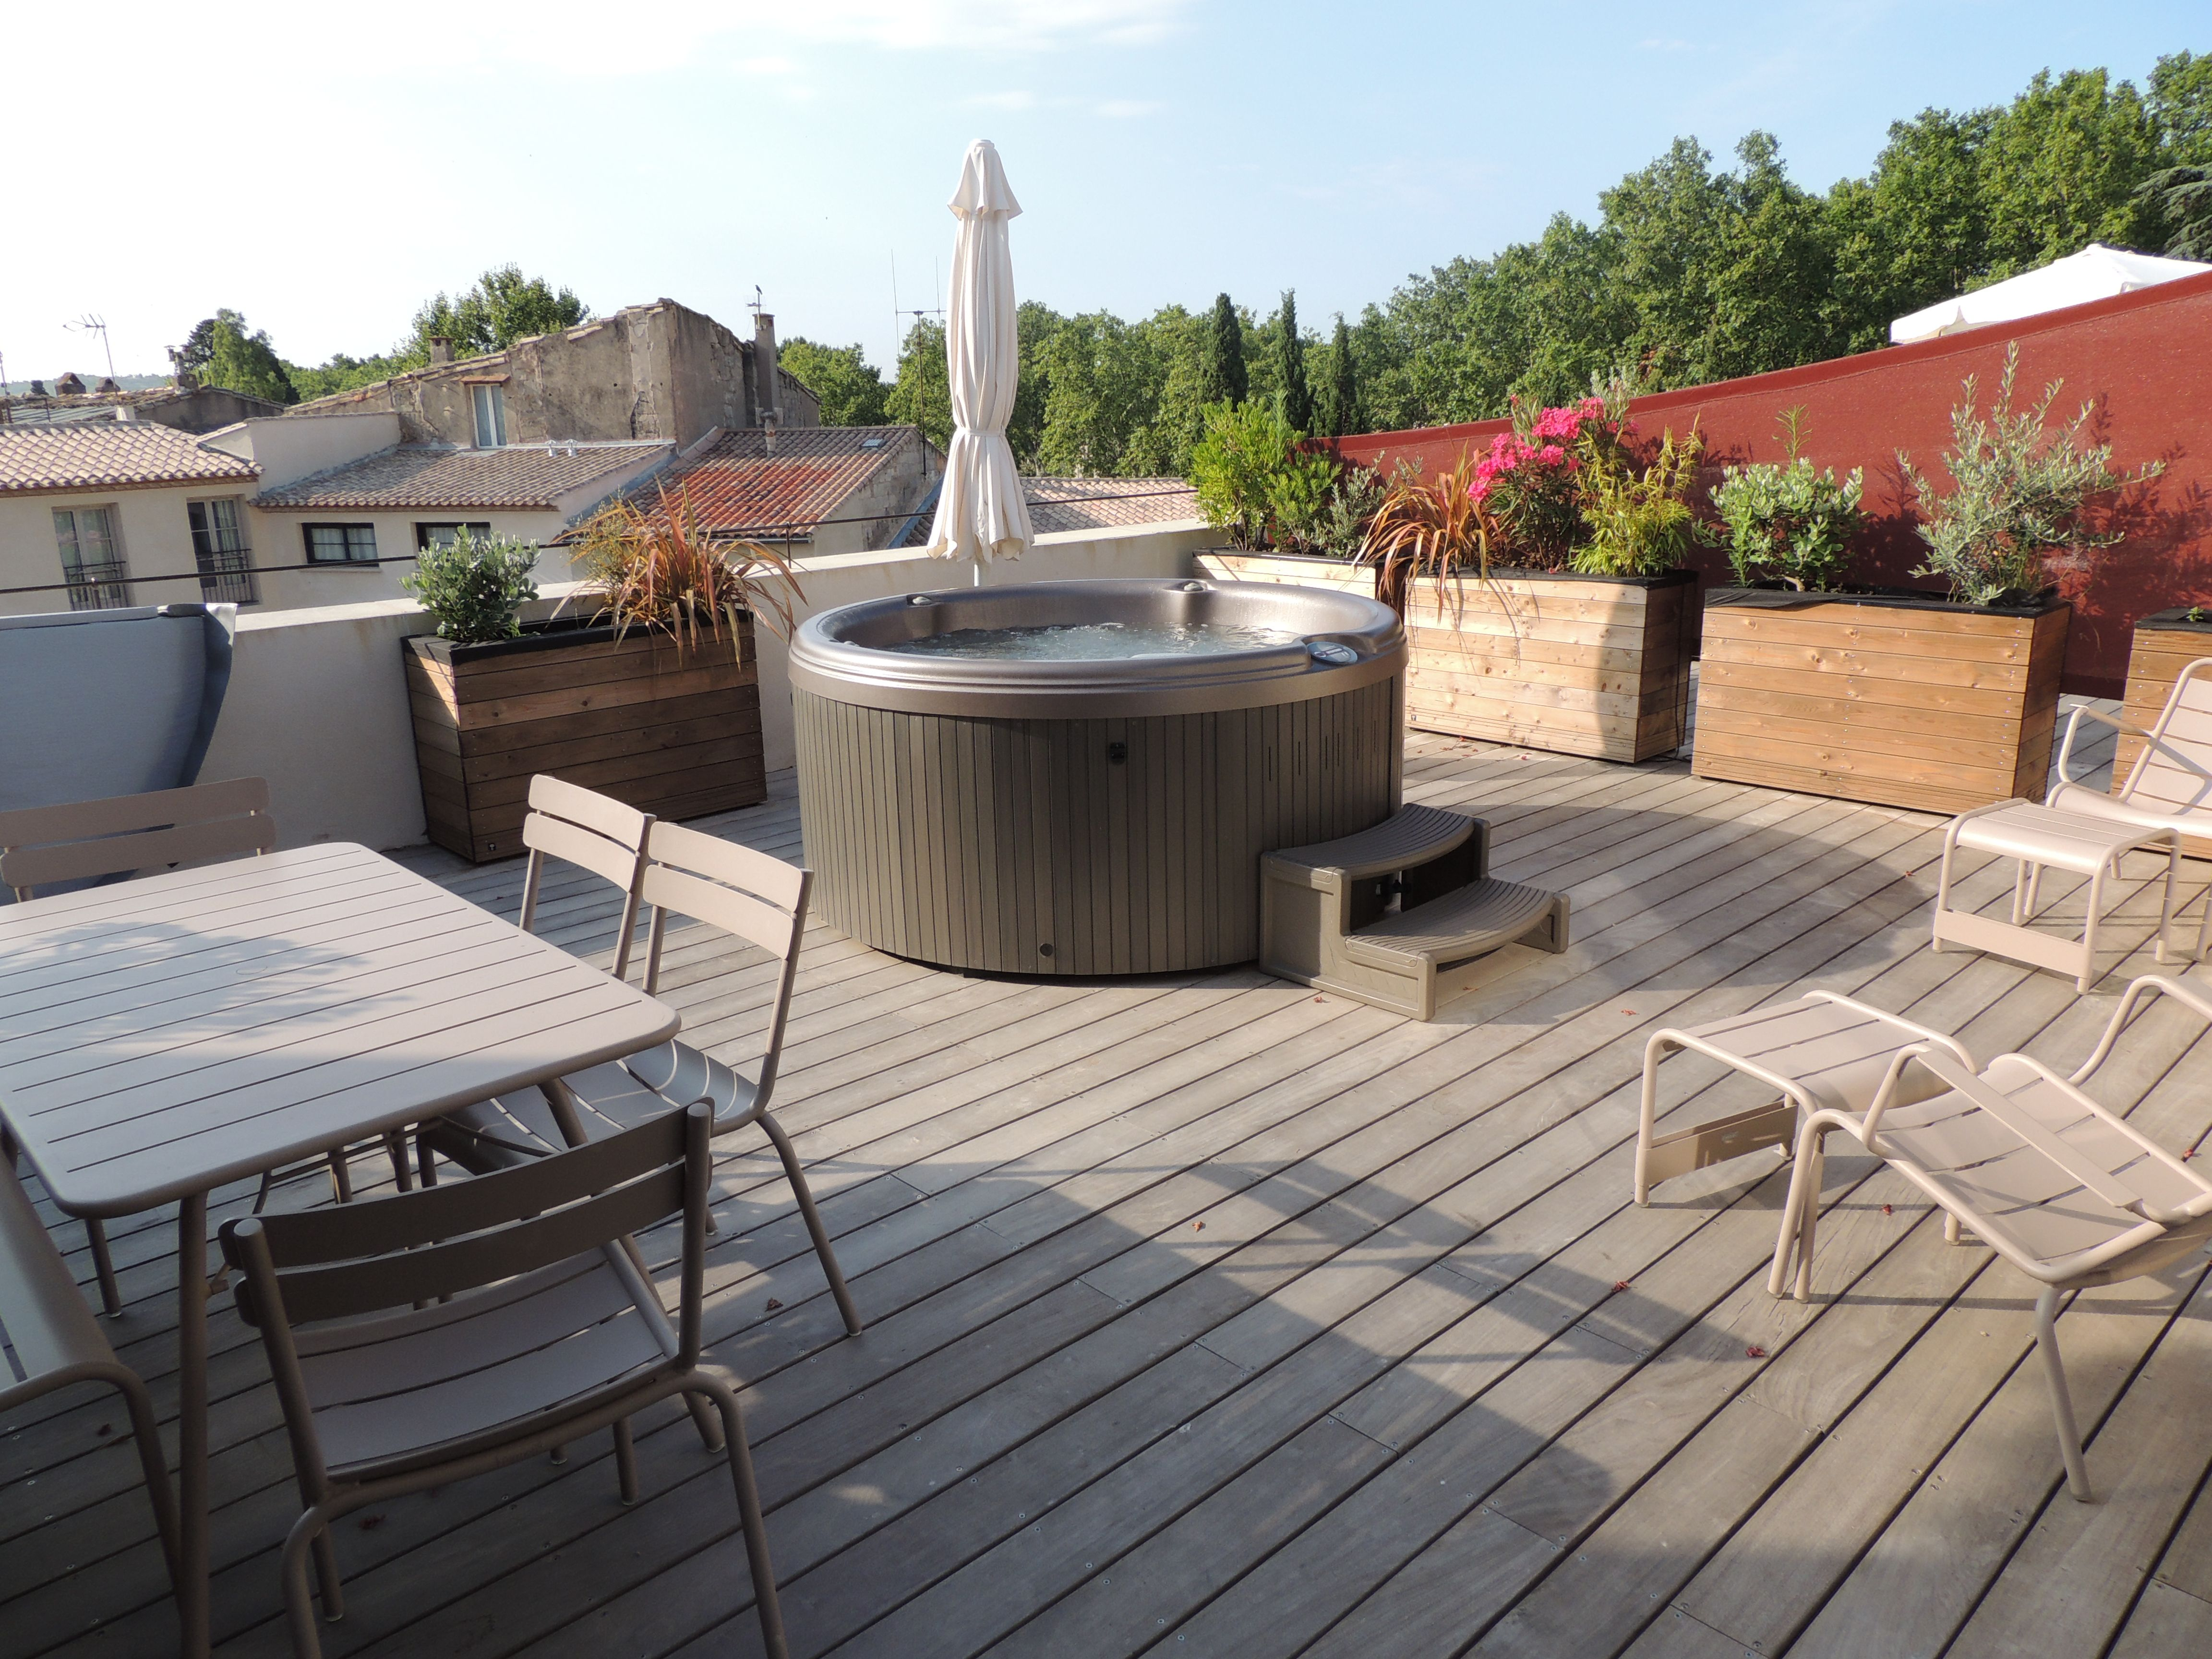 100 Incroyable Suggestions Jacuzzi Gonflable Sur Terrasse Appartement